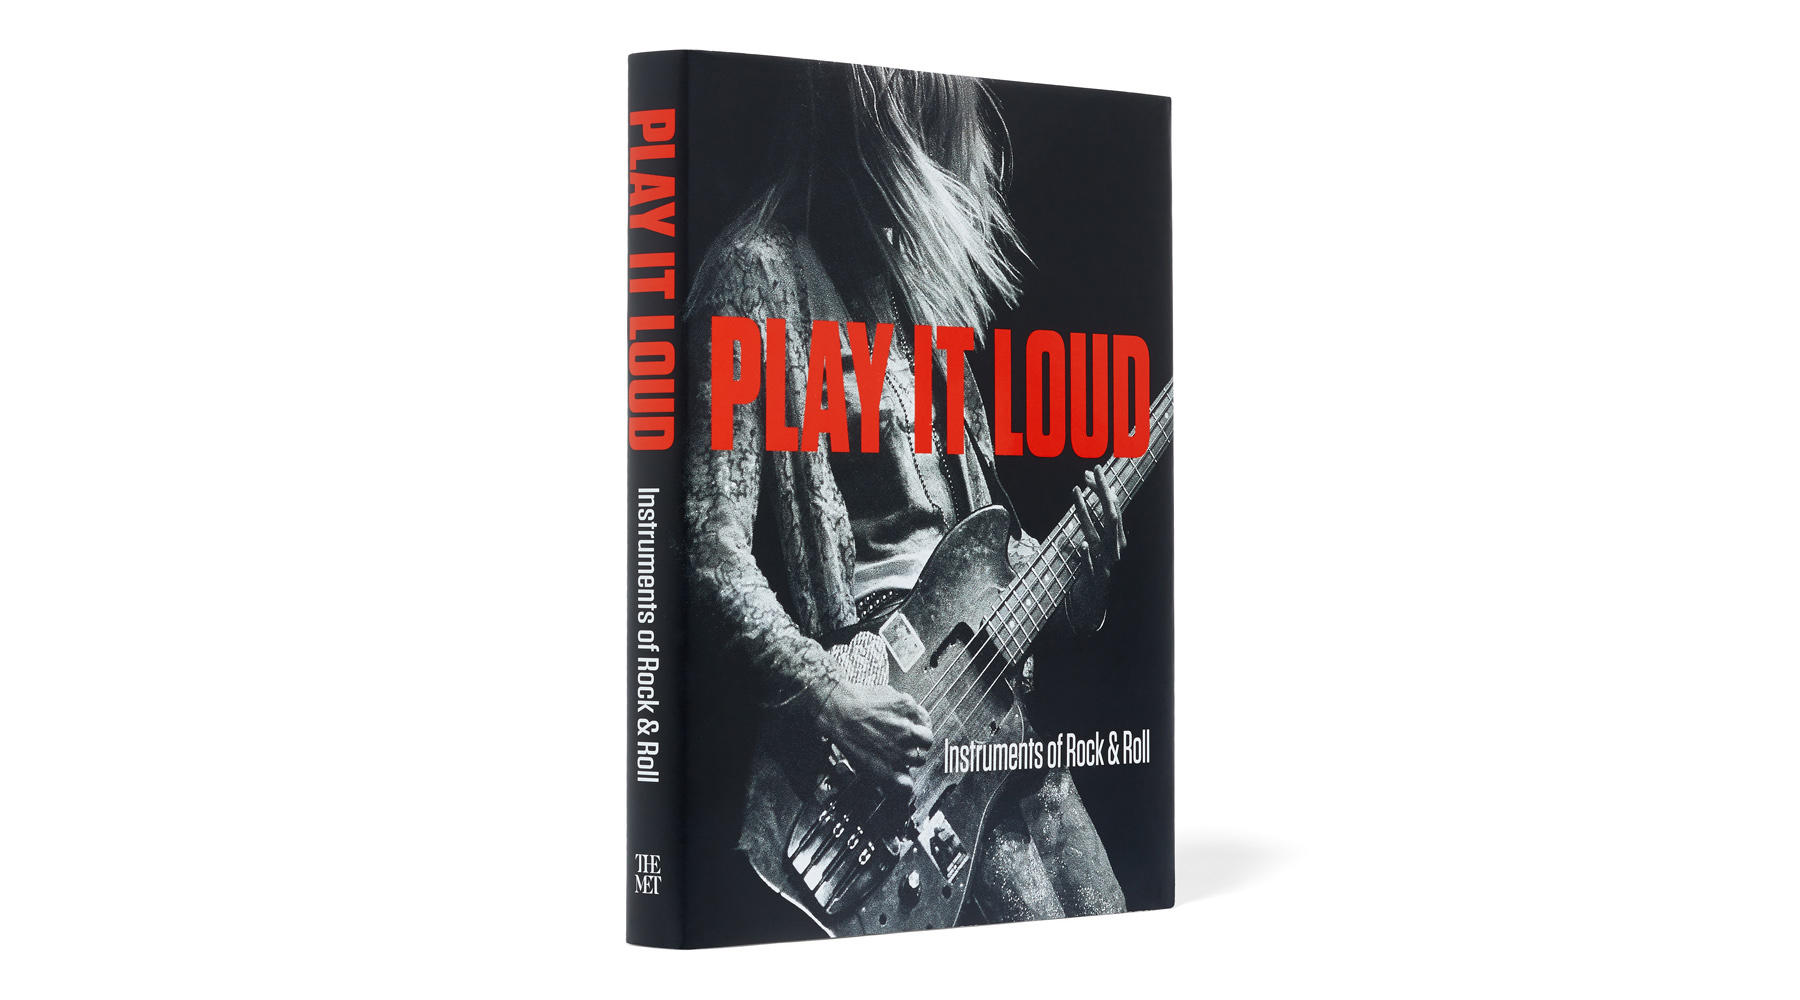 Play It Loud, the book